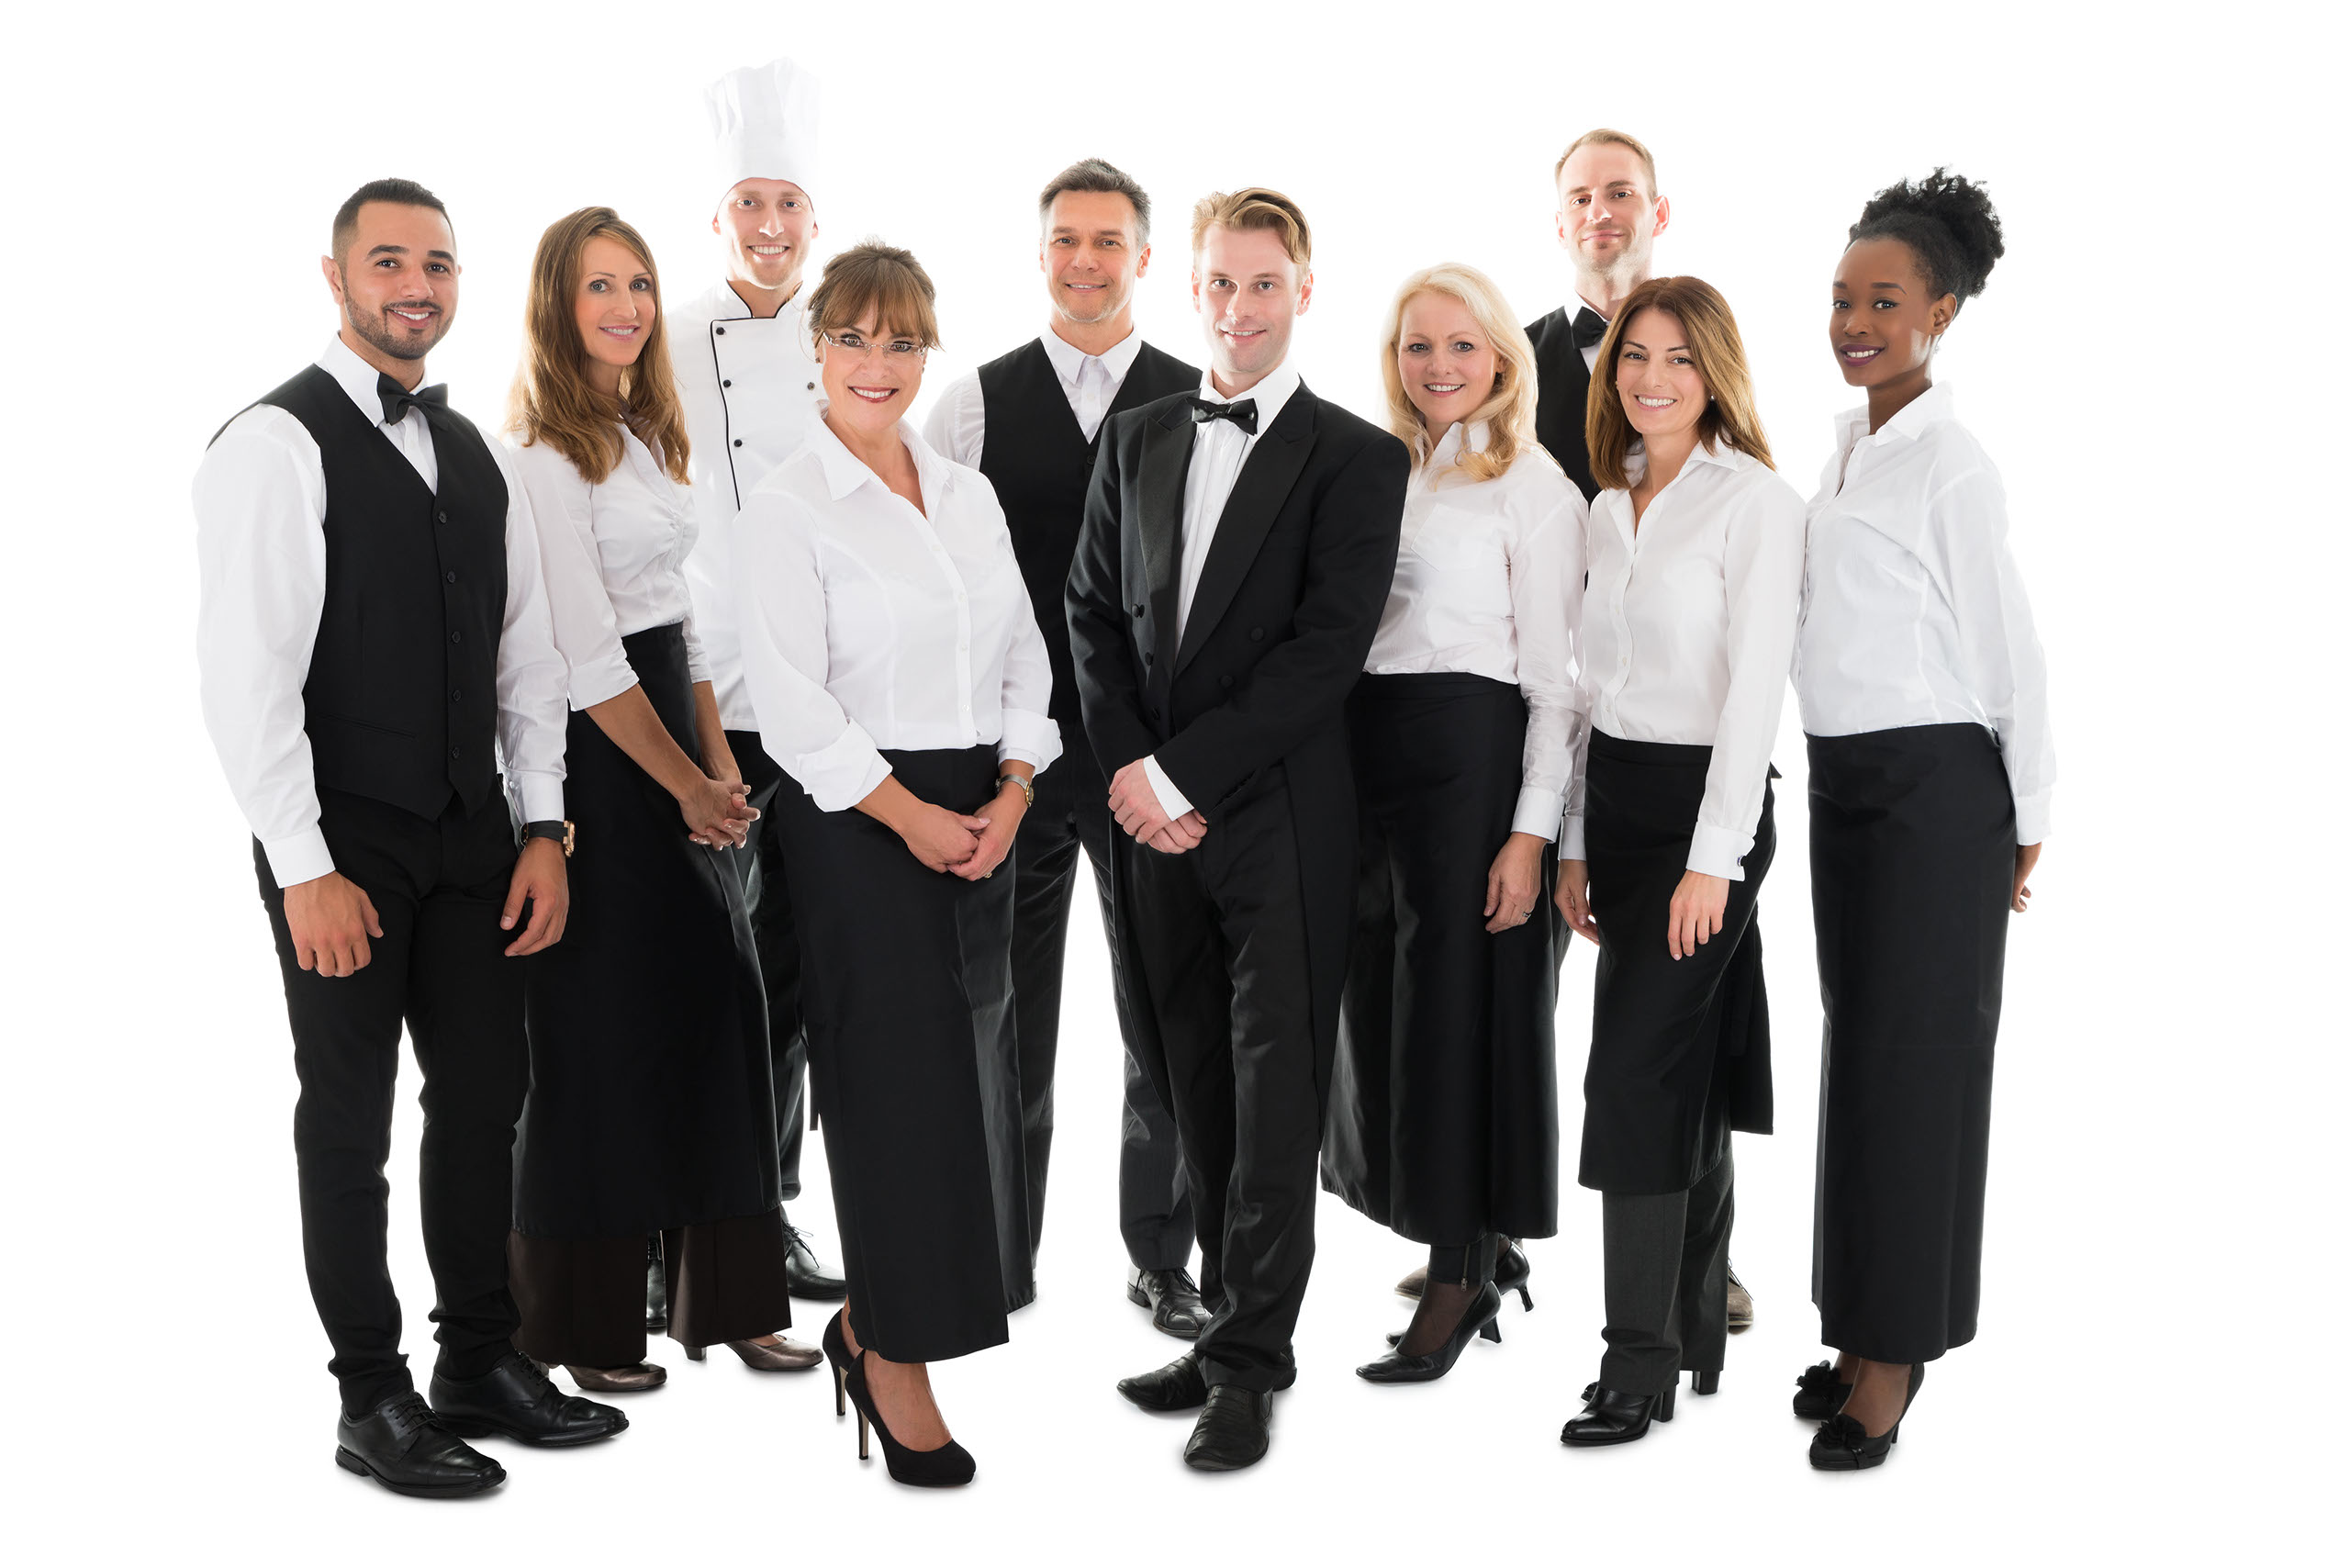 find exciting career opportunities at avytage hotel jobs employees at a hotel